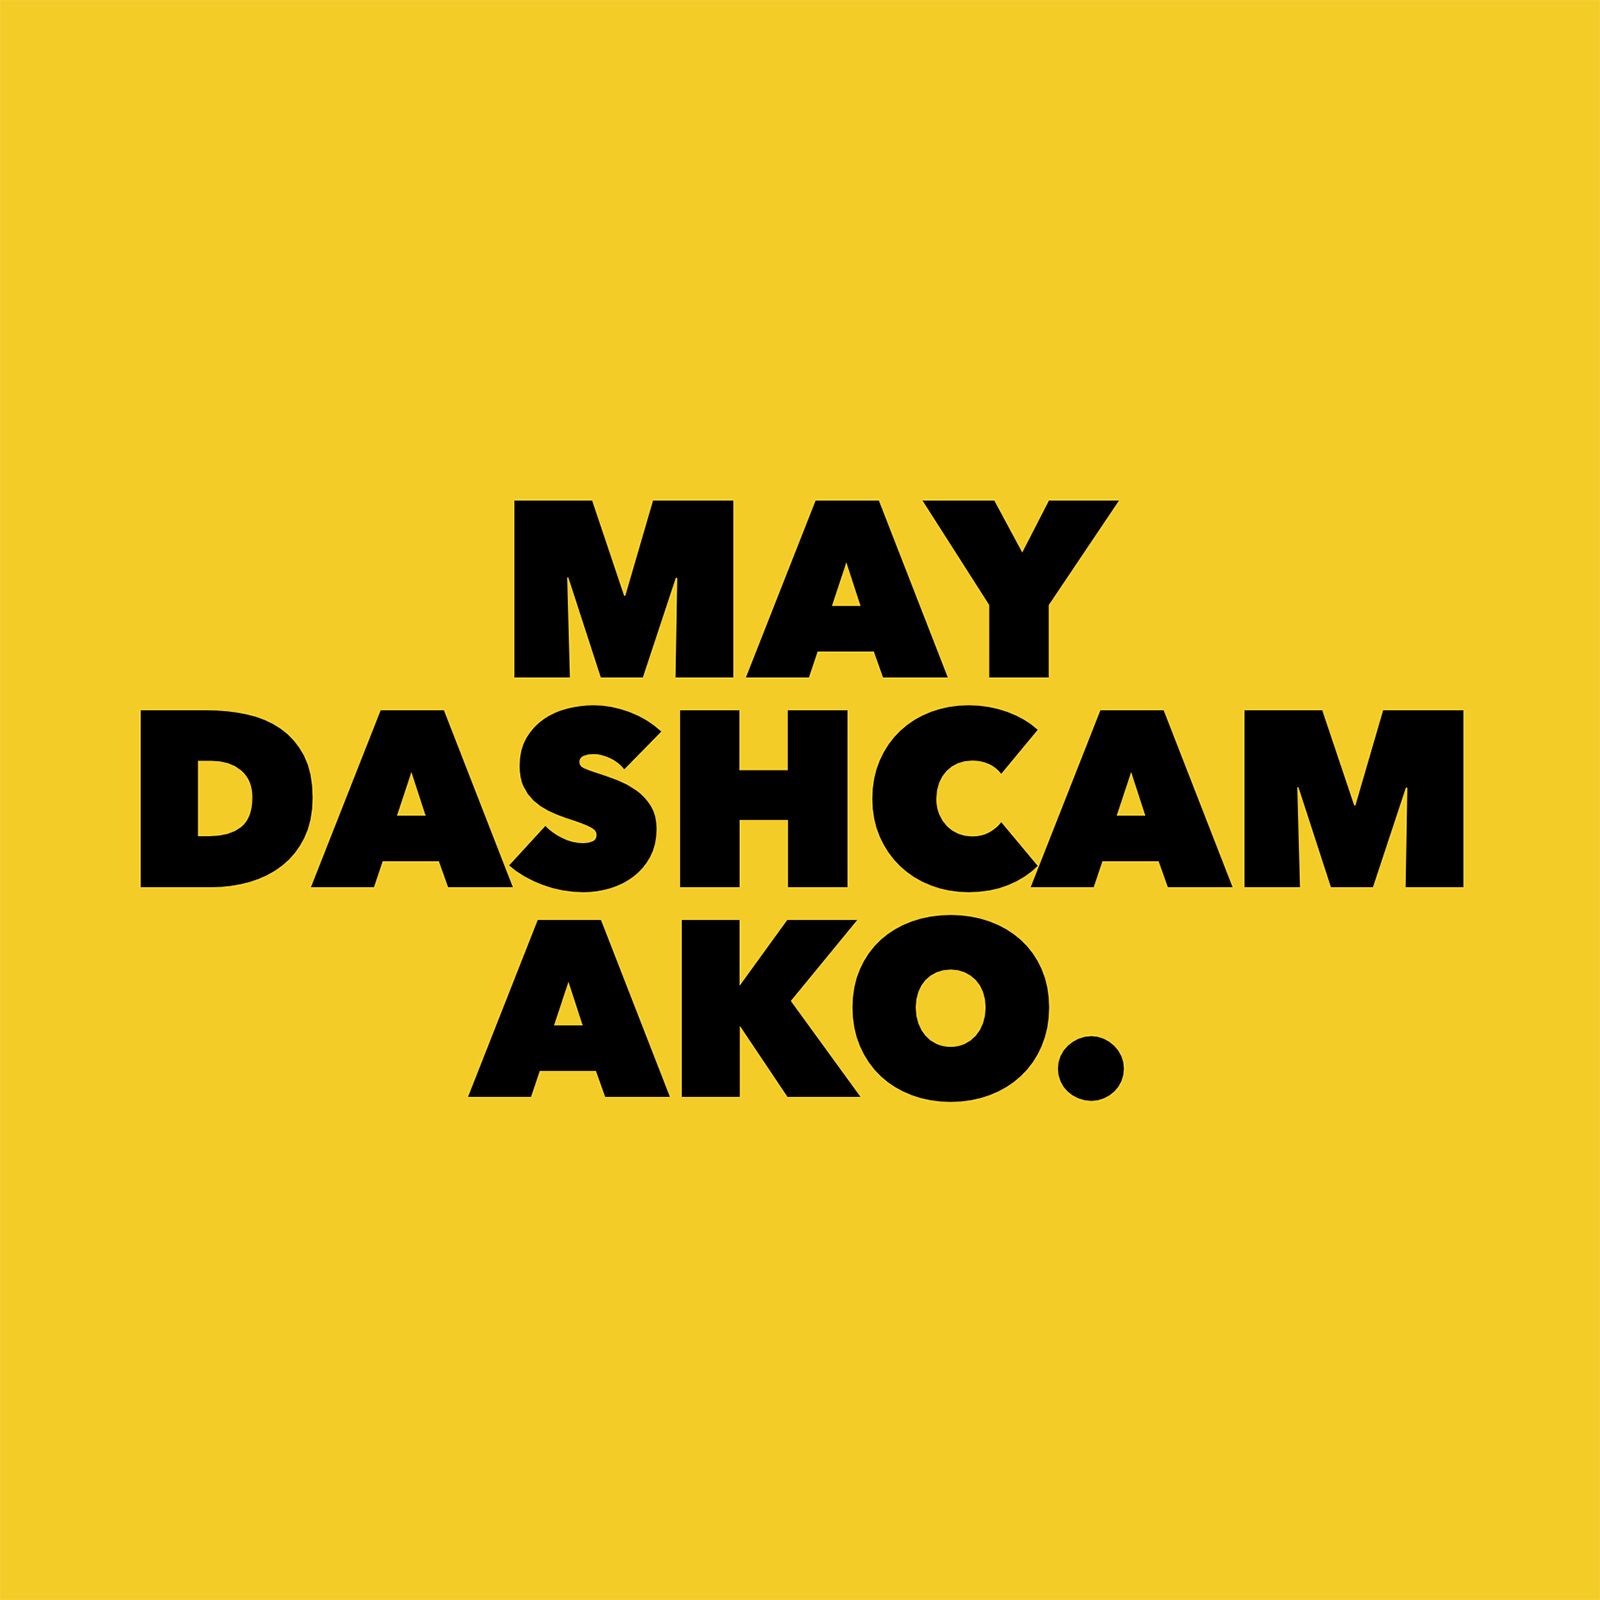 We need these 'MAY DASHCAM AKO' stickers on our cars